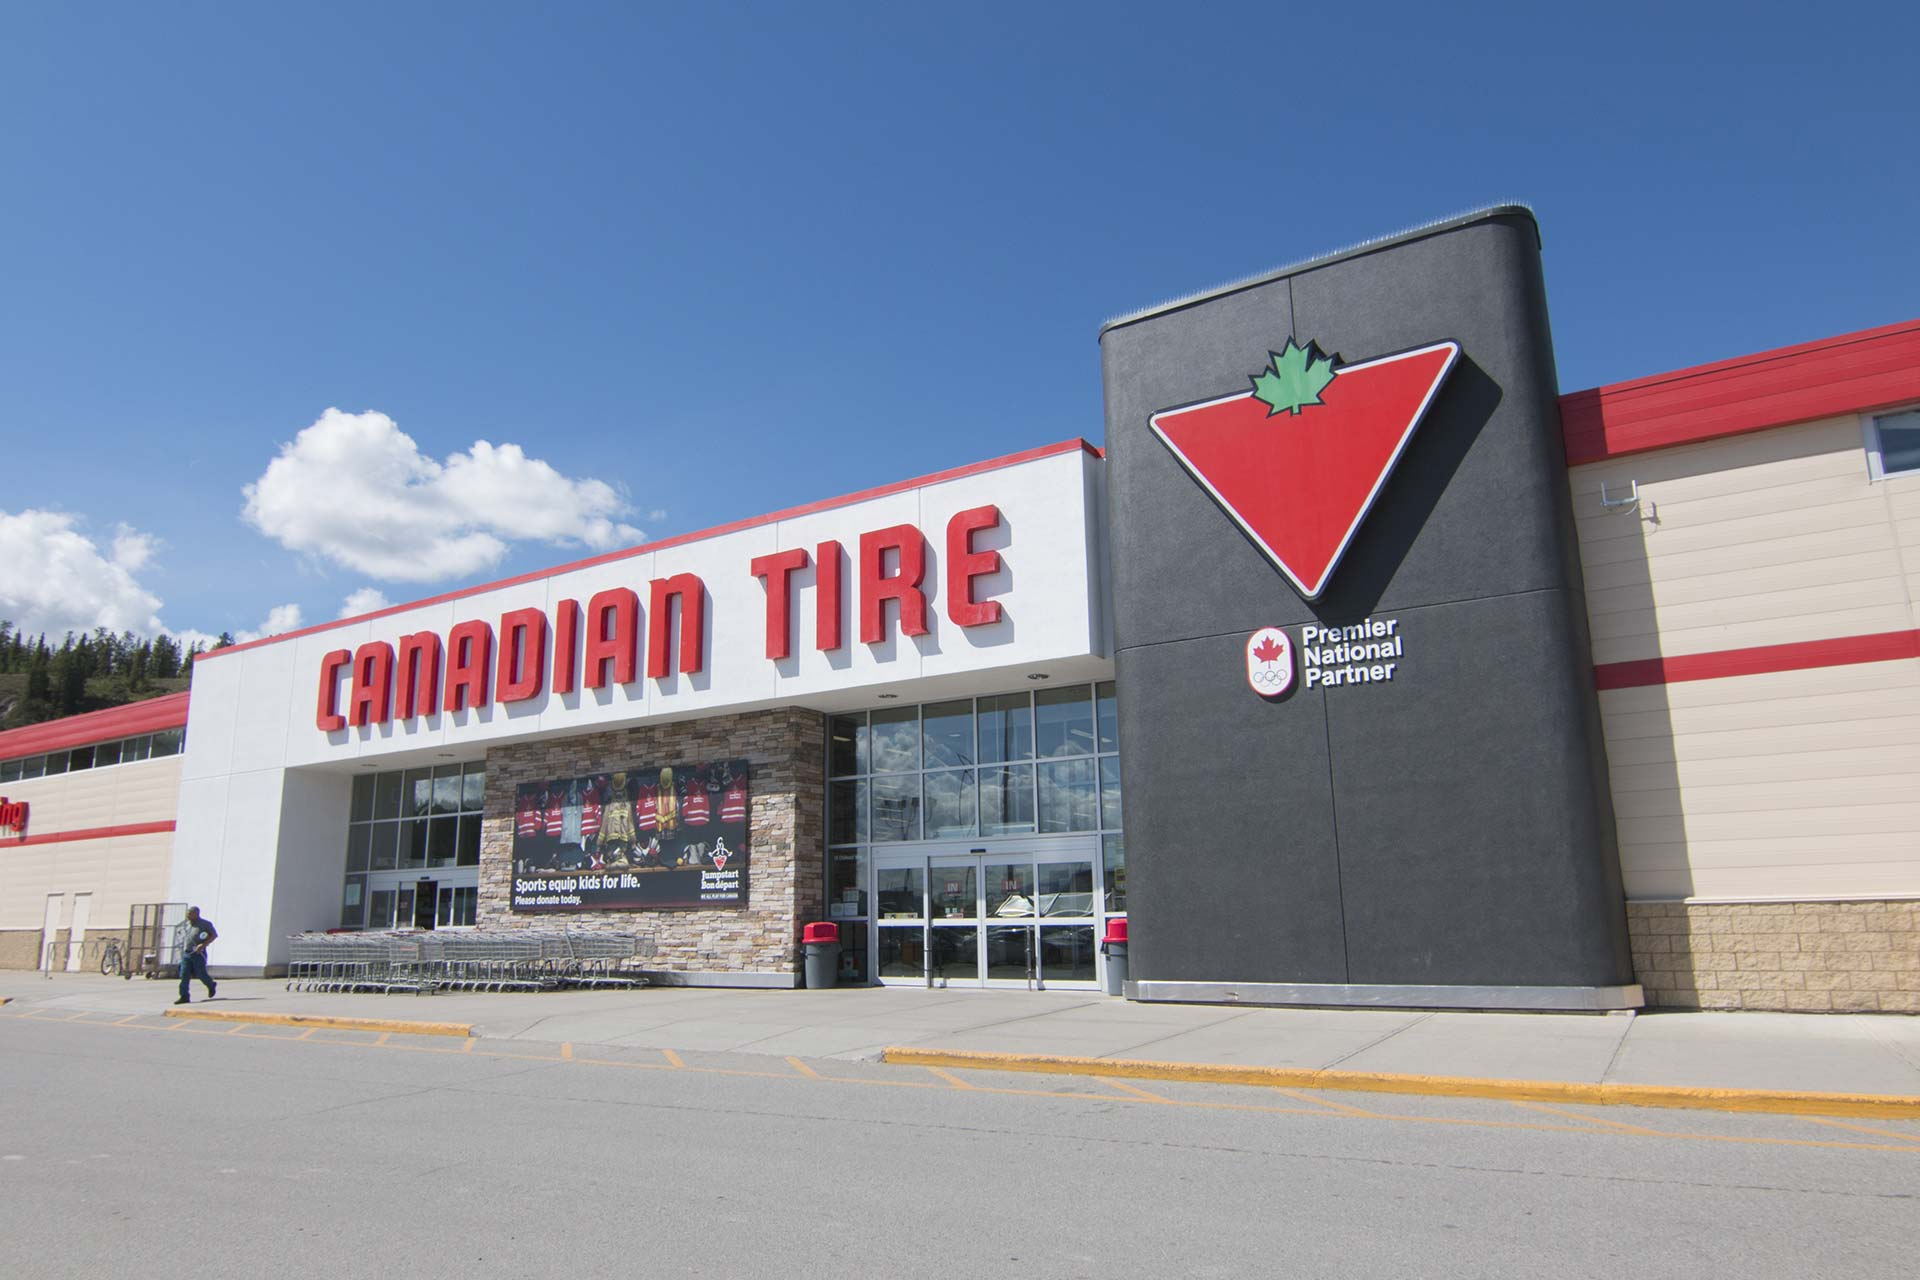 Canadian Tire Yukon Territory Alaska Northern British